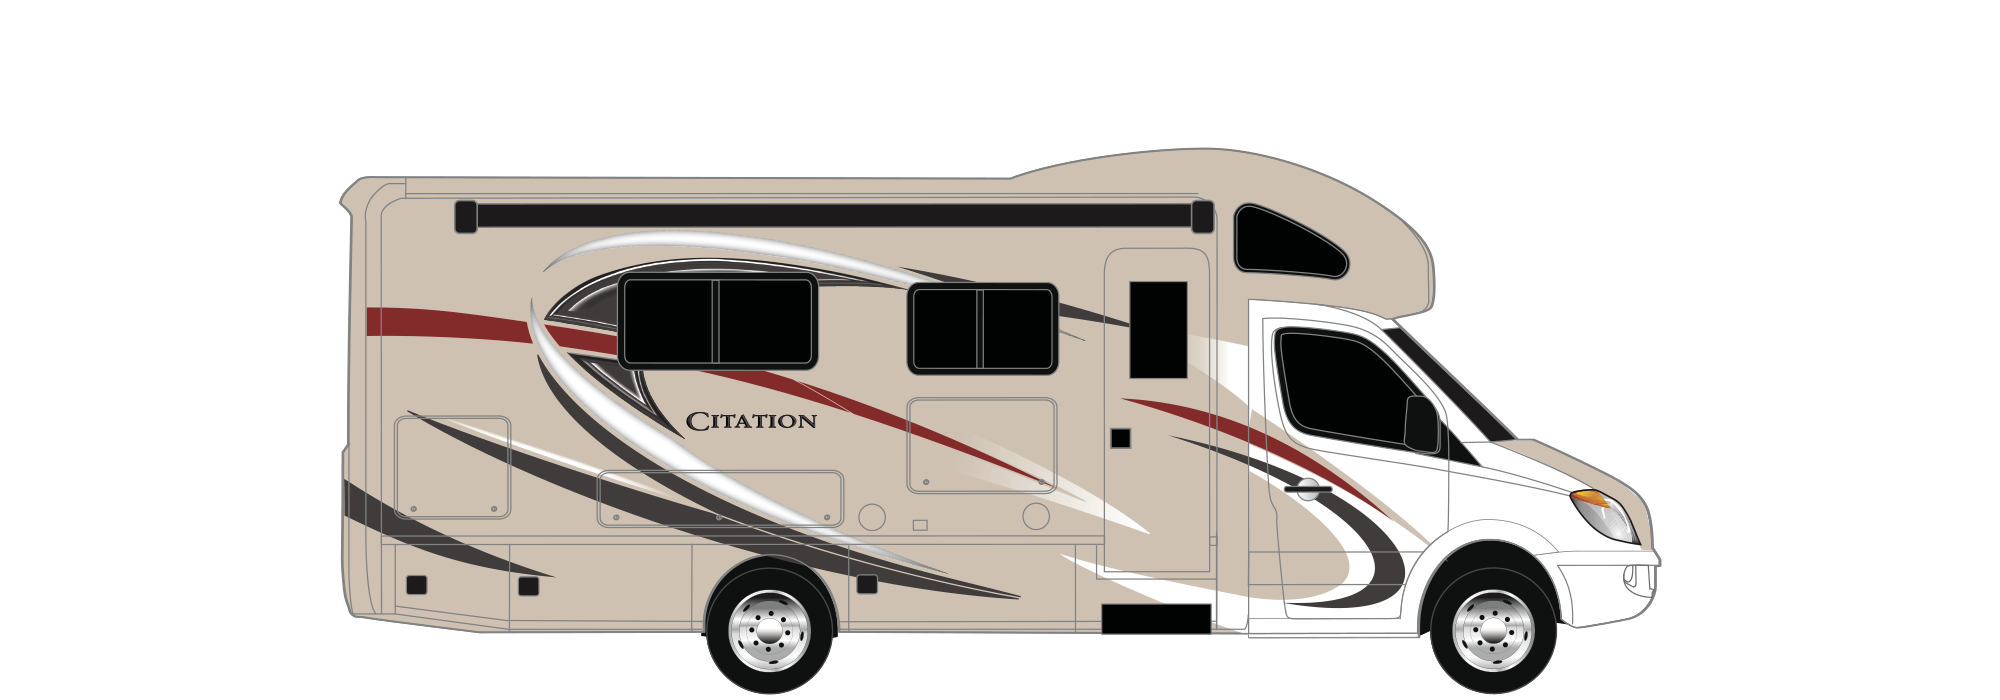 Citation sprinter class c motorhomes color options for Thor motor coach citation sprinter